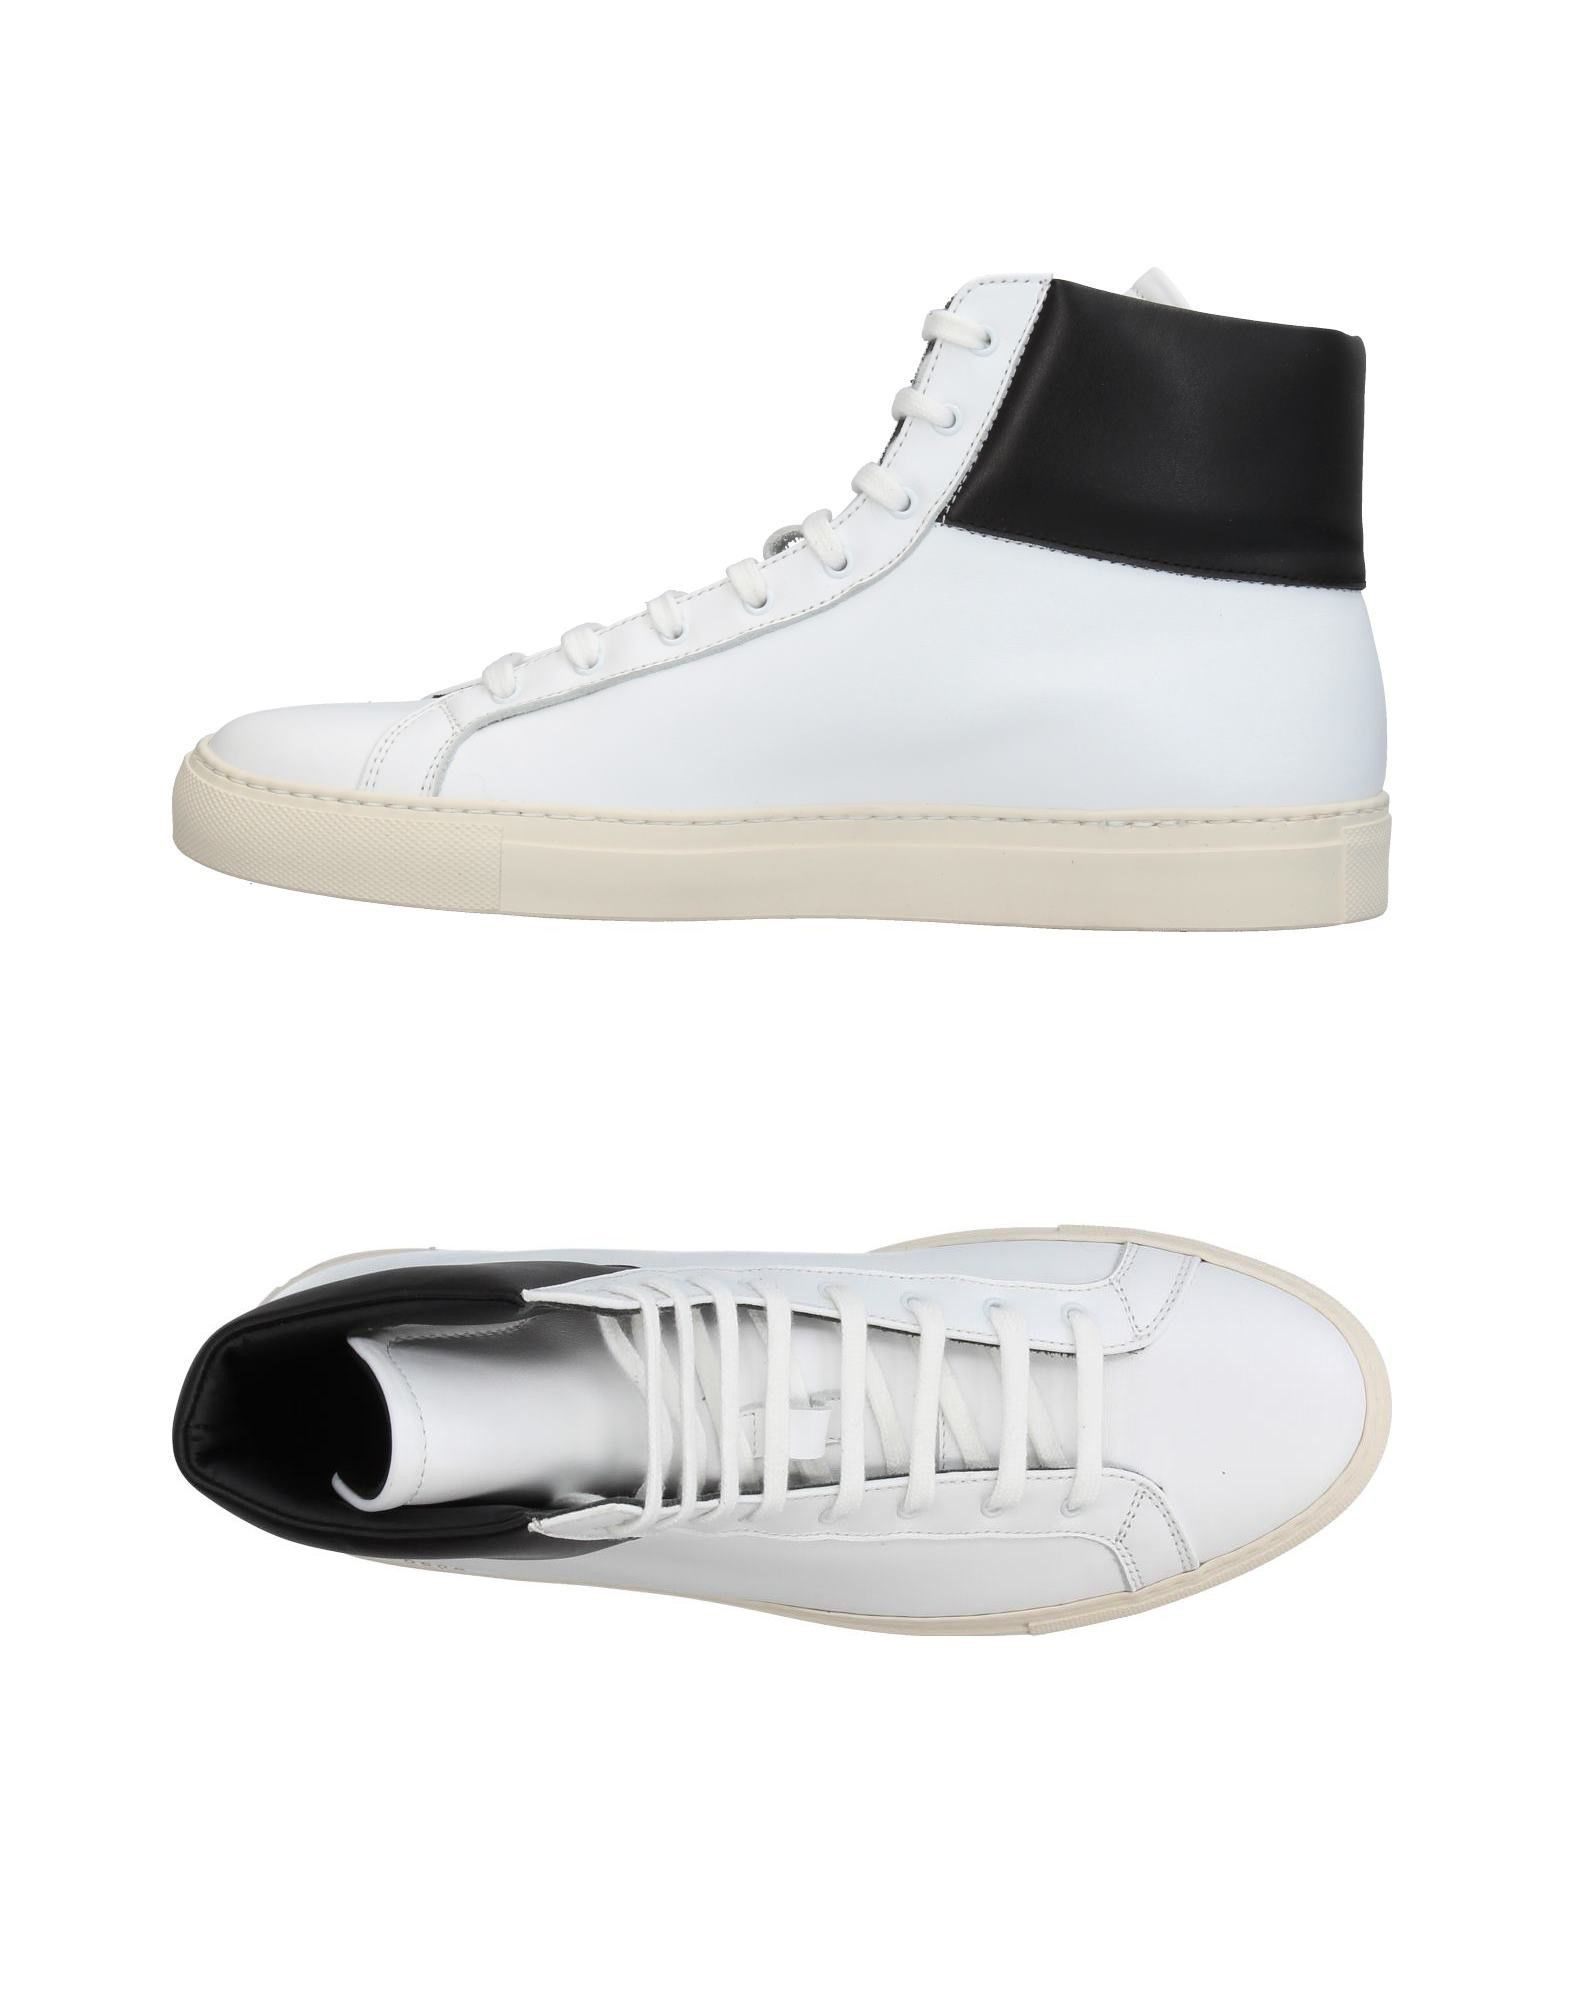 Common Common Projects Sneakers - Men Common Common Projects Sneakers online on  Australia - 11384244DG 18b8ce